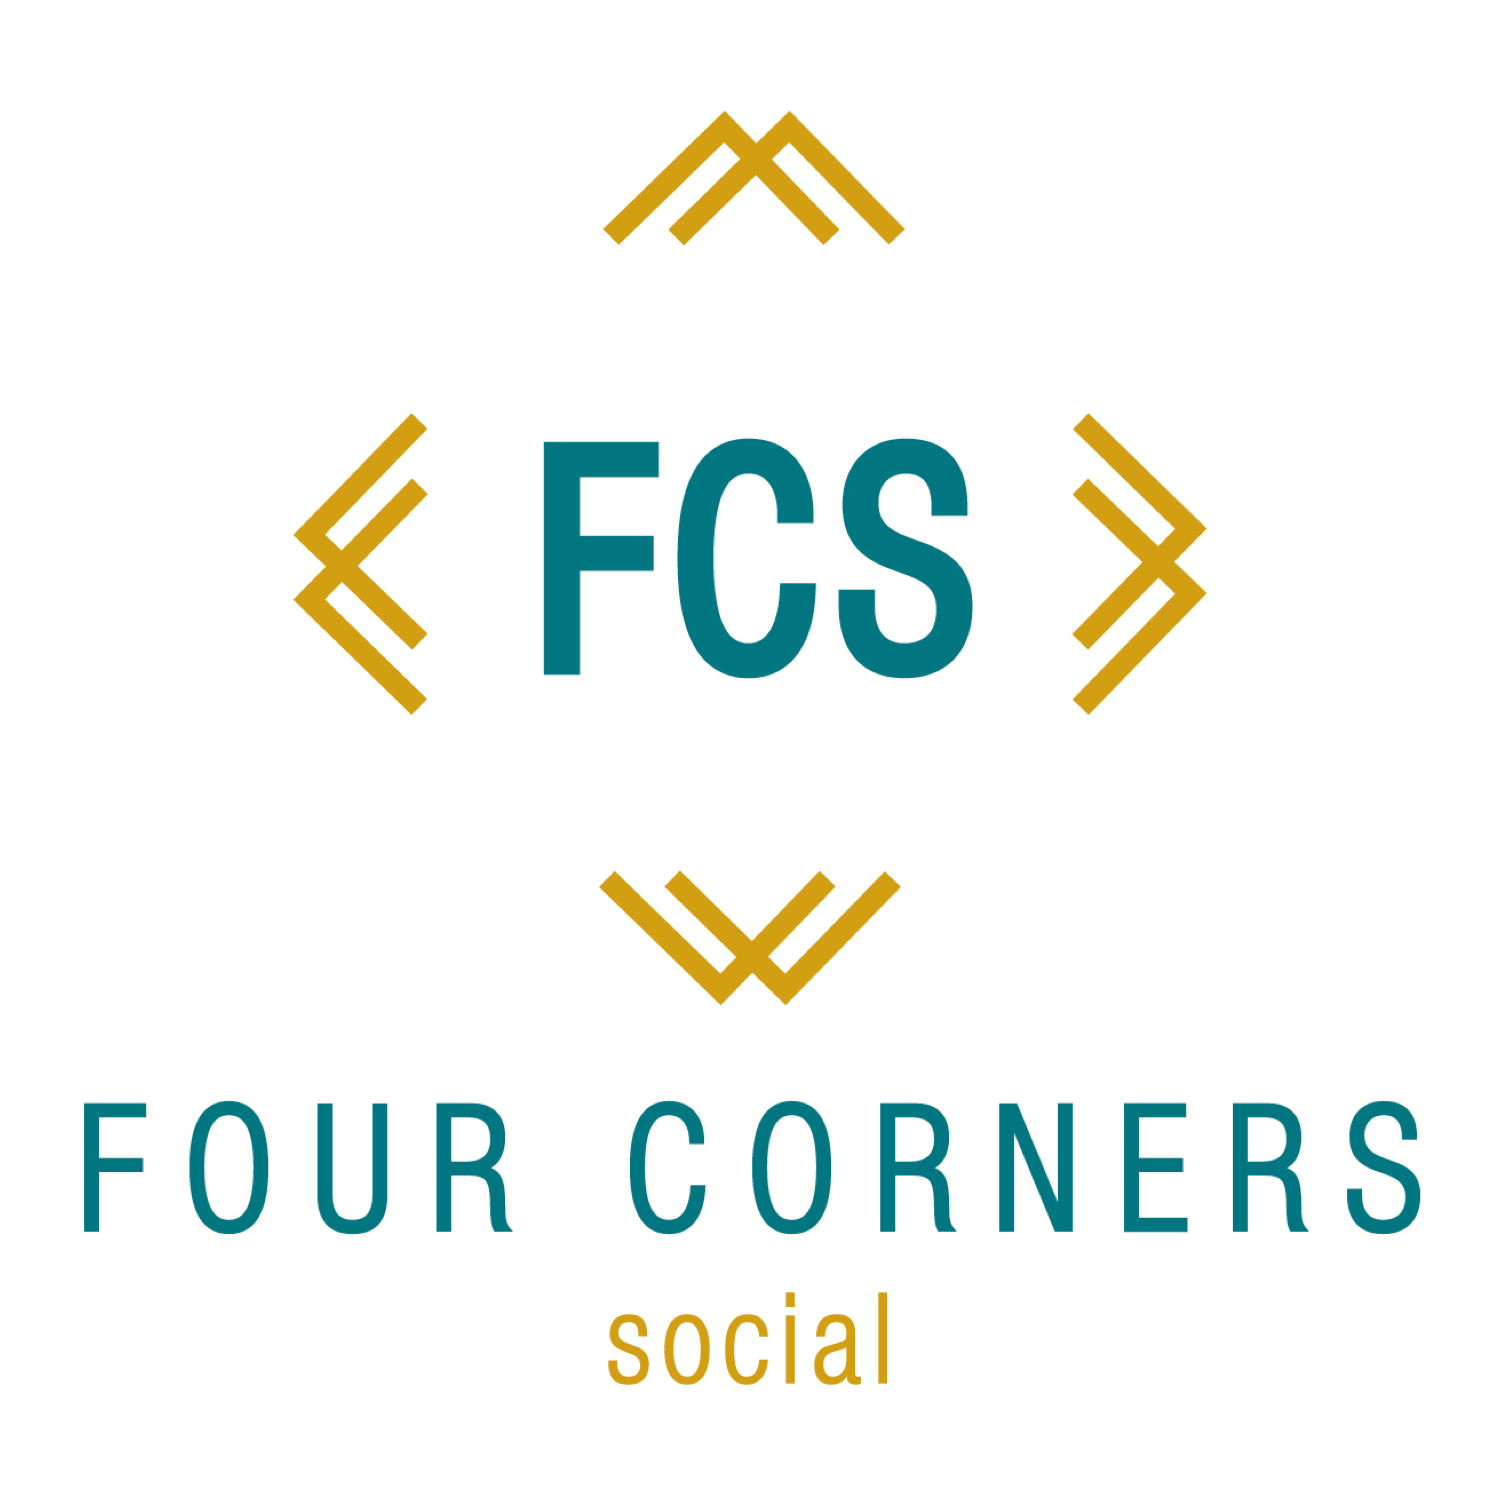 Four Corners Social   Four Corners Social is a full-service social media management firm, based in Tulsa, serving businesses from coast to coast. We help local businesses maximize growth and customer loyalty through social media!